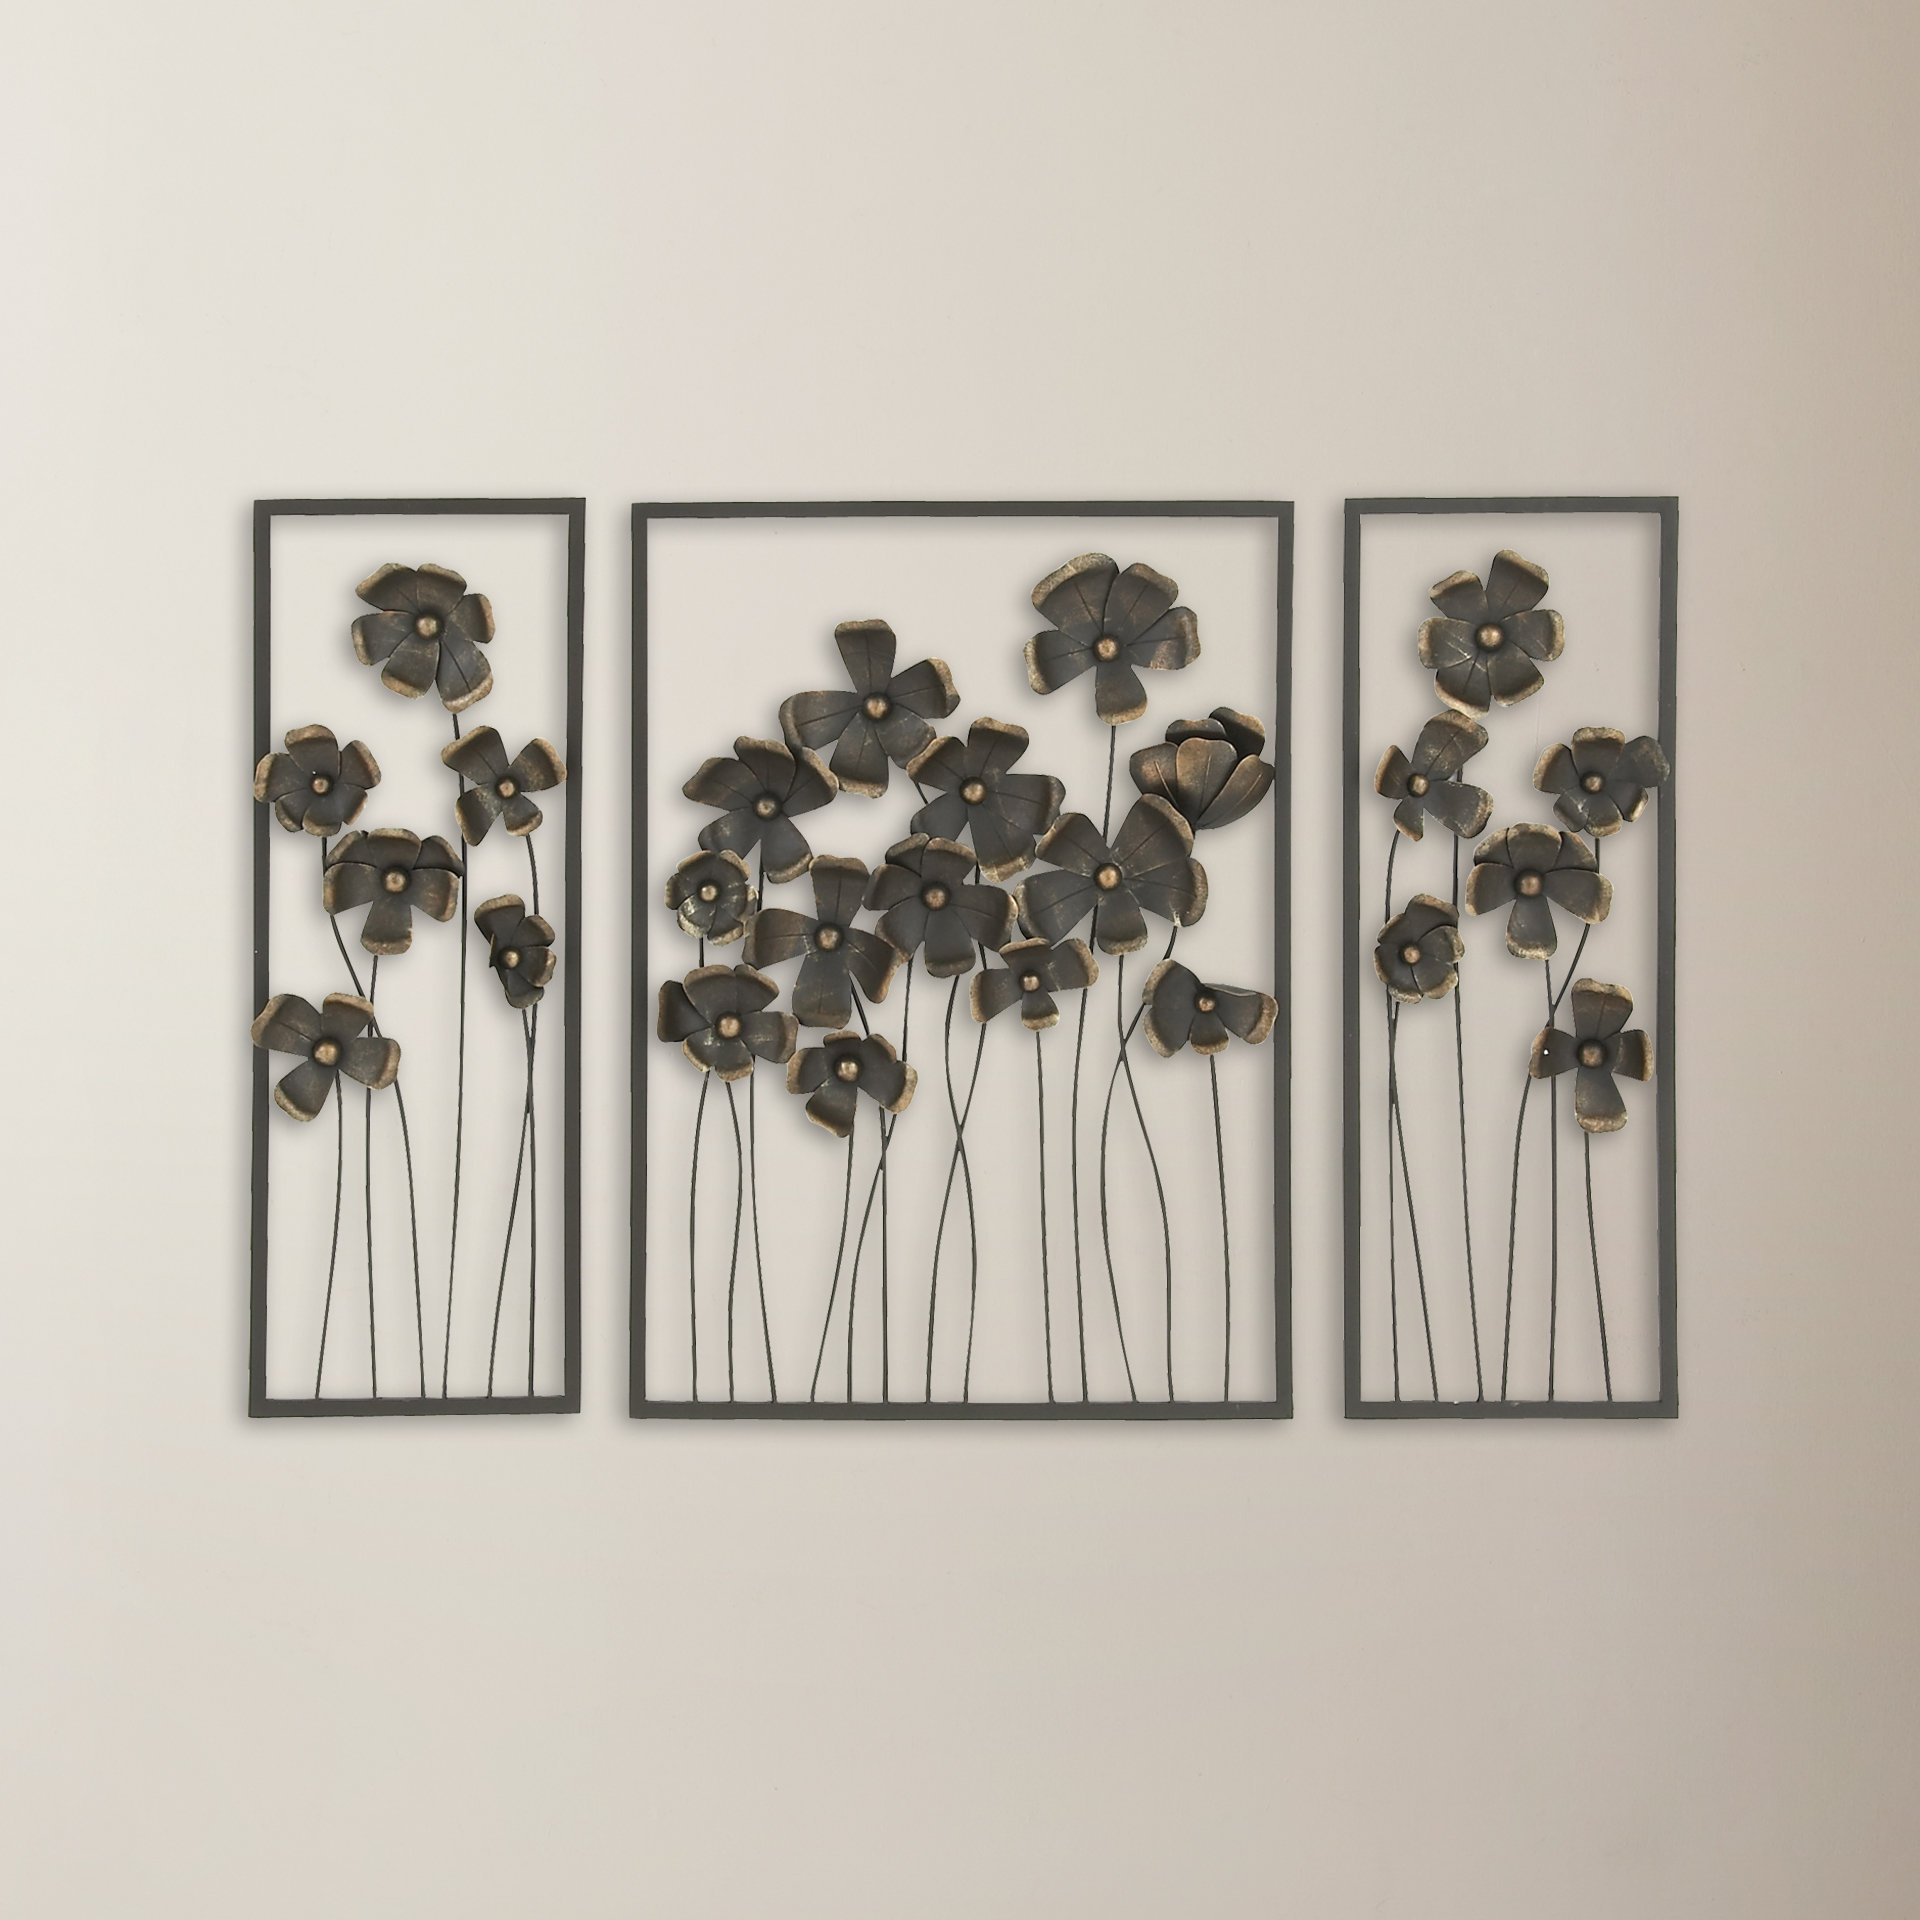 Brayden Studio 3 Piece Chic Wall Décor Set & Reviews (View 4 of 20)